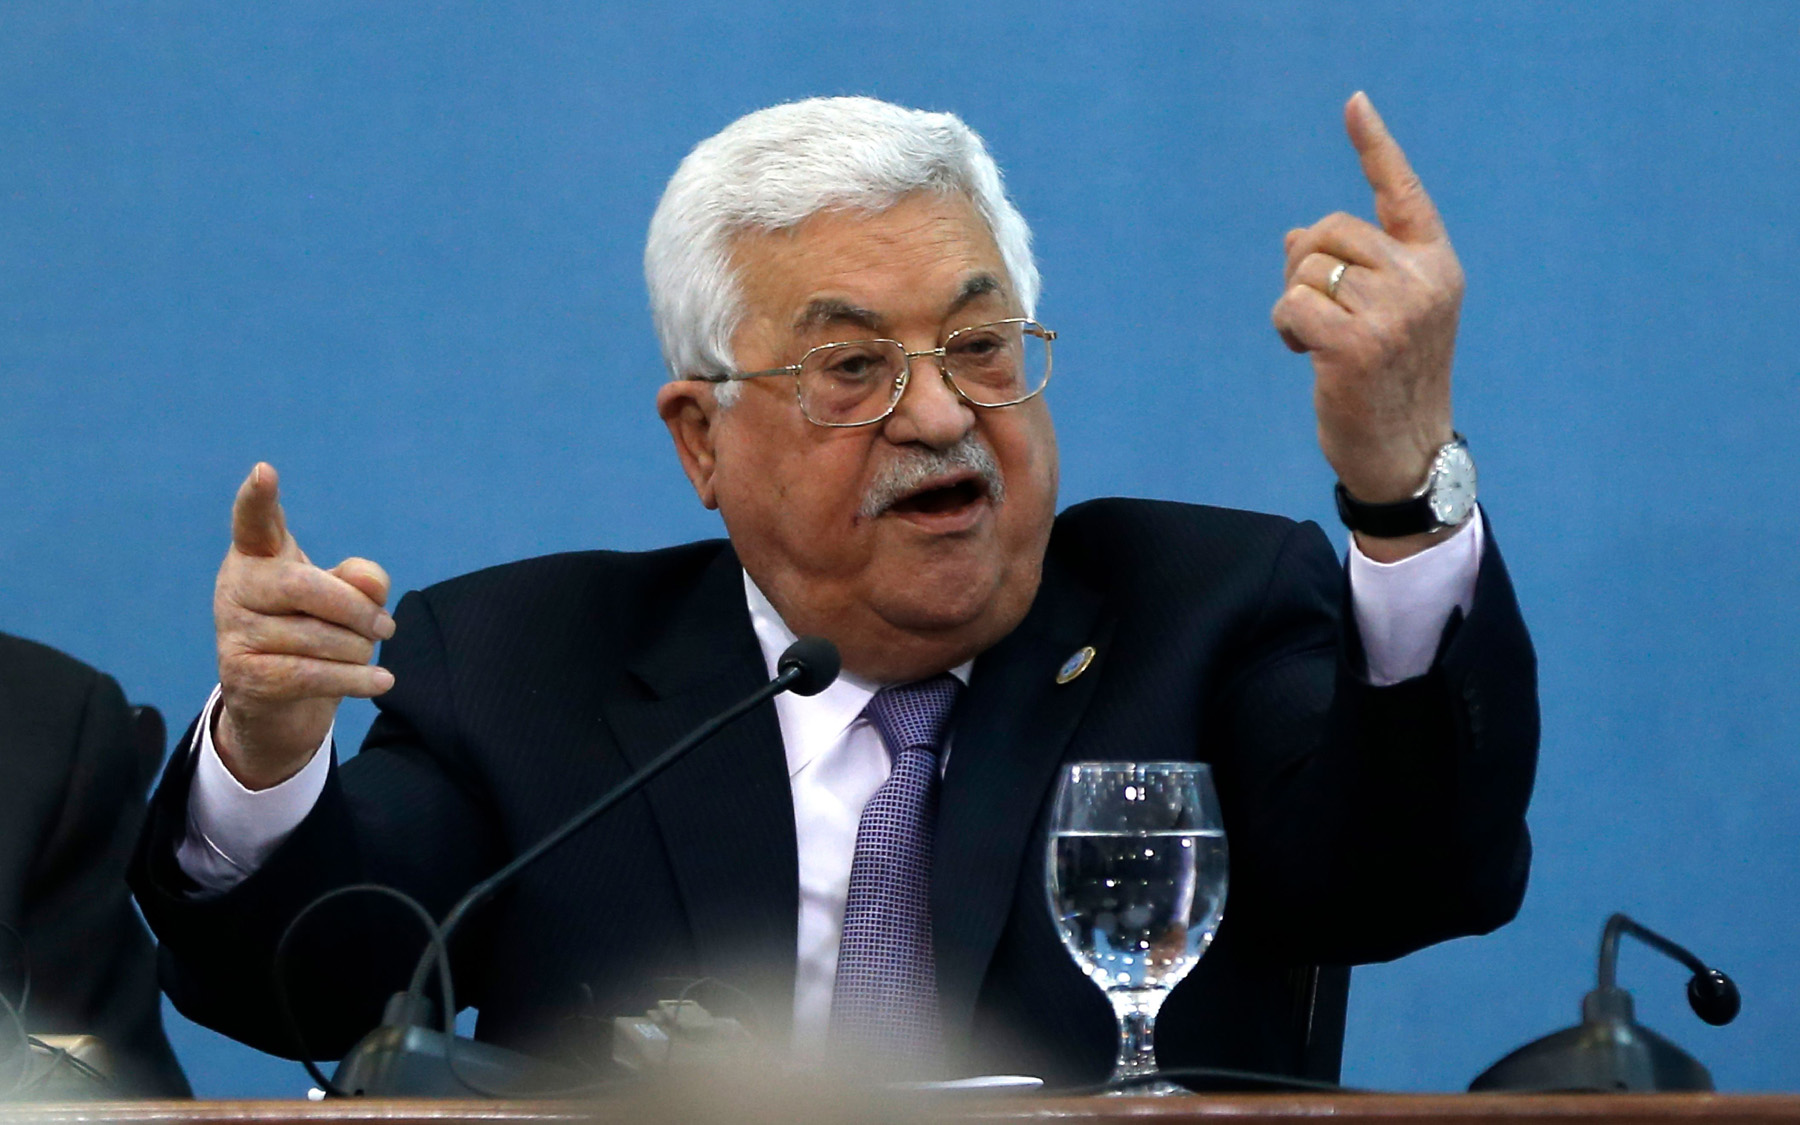 Palestinian President Mahmoud Abbas speaks at the Palestinian Peace and Freedom Forum in Ramallah, February 6. (AFP)